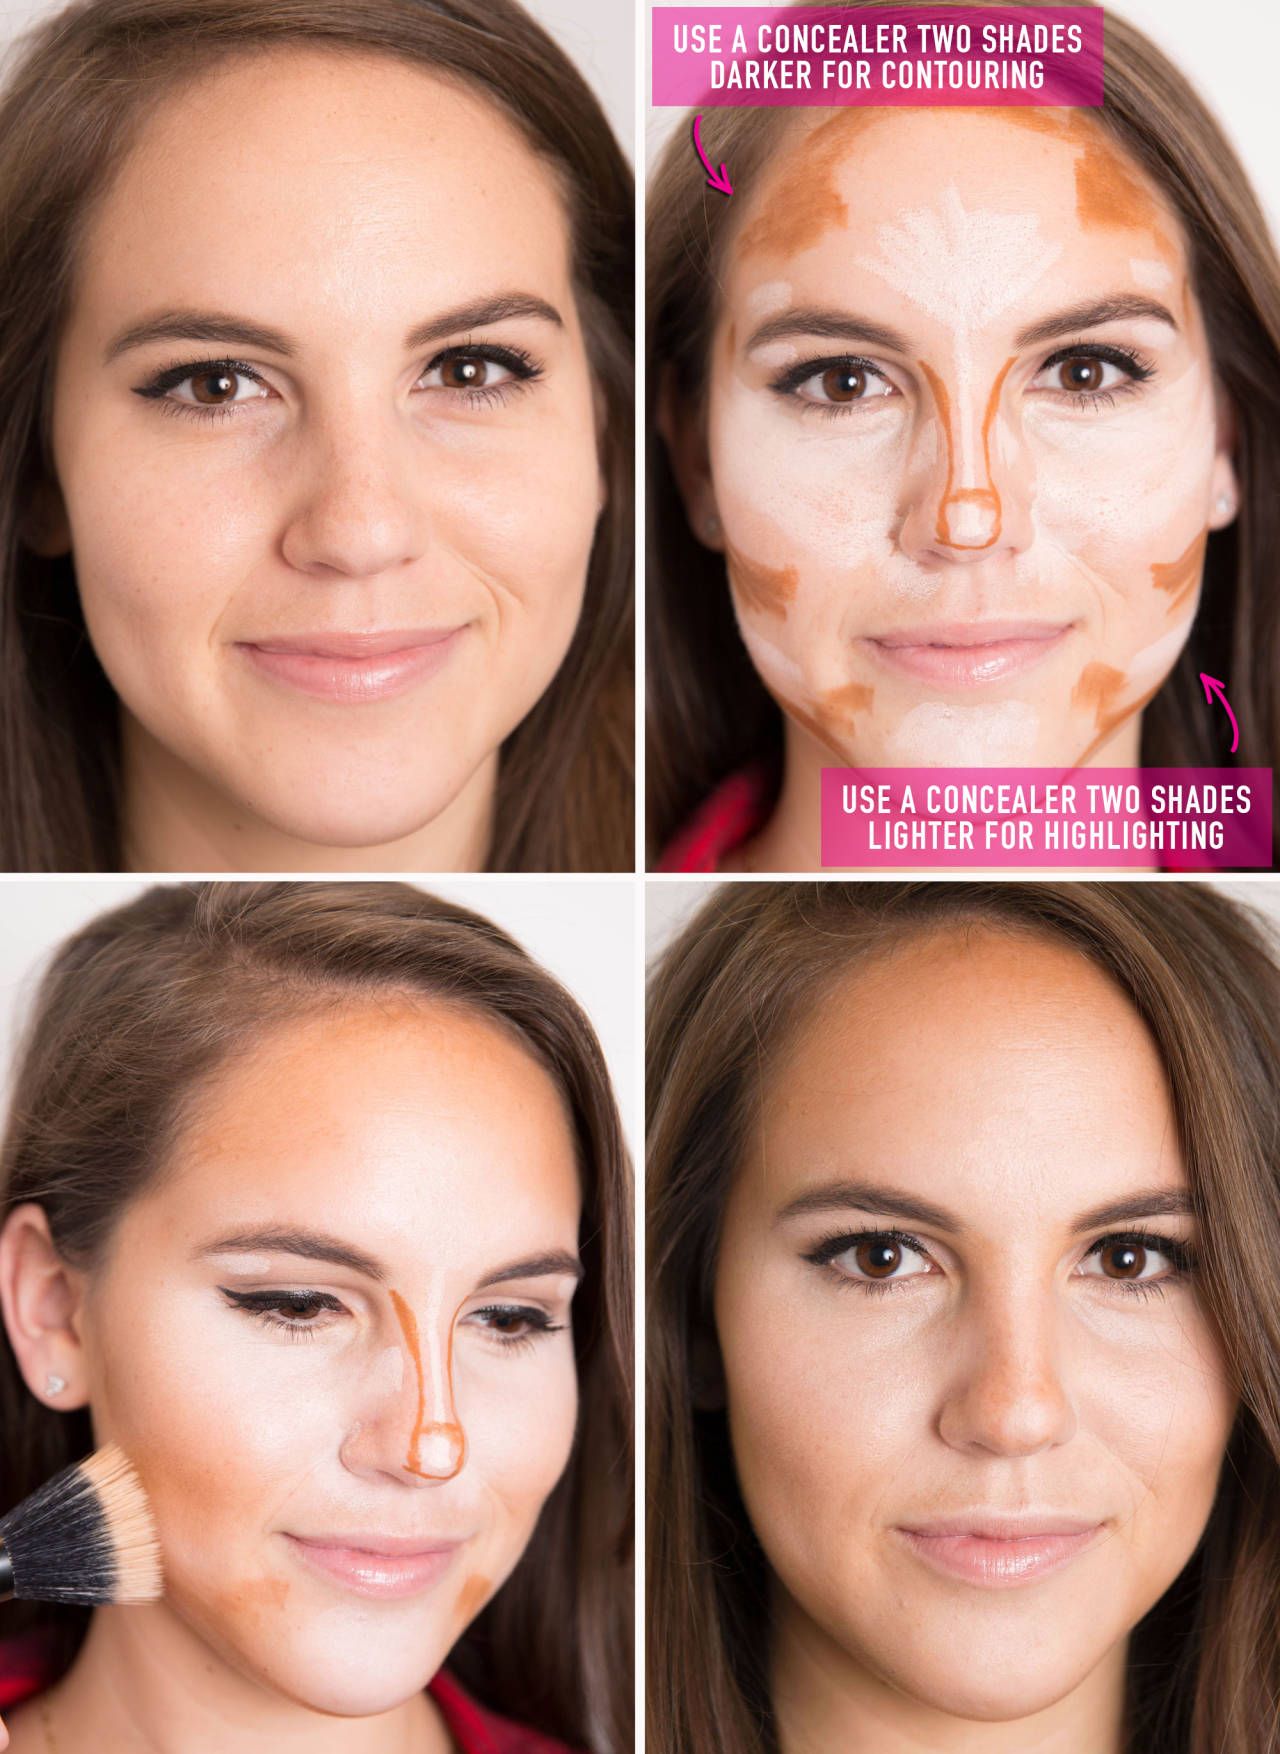 Amp up your going-out makeup by contouring and highlighting your facial features with two concealers: one two shades darker than your skin tone and one two shades lighter.